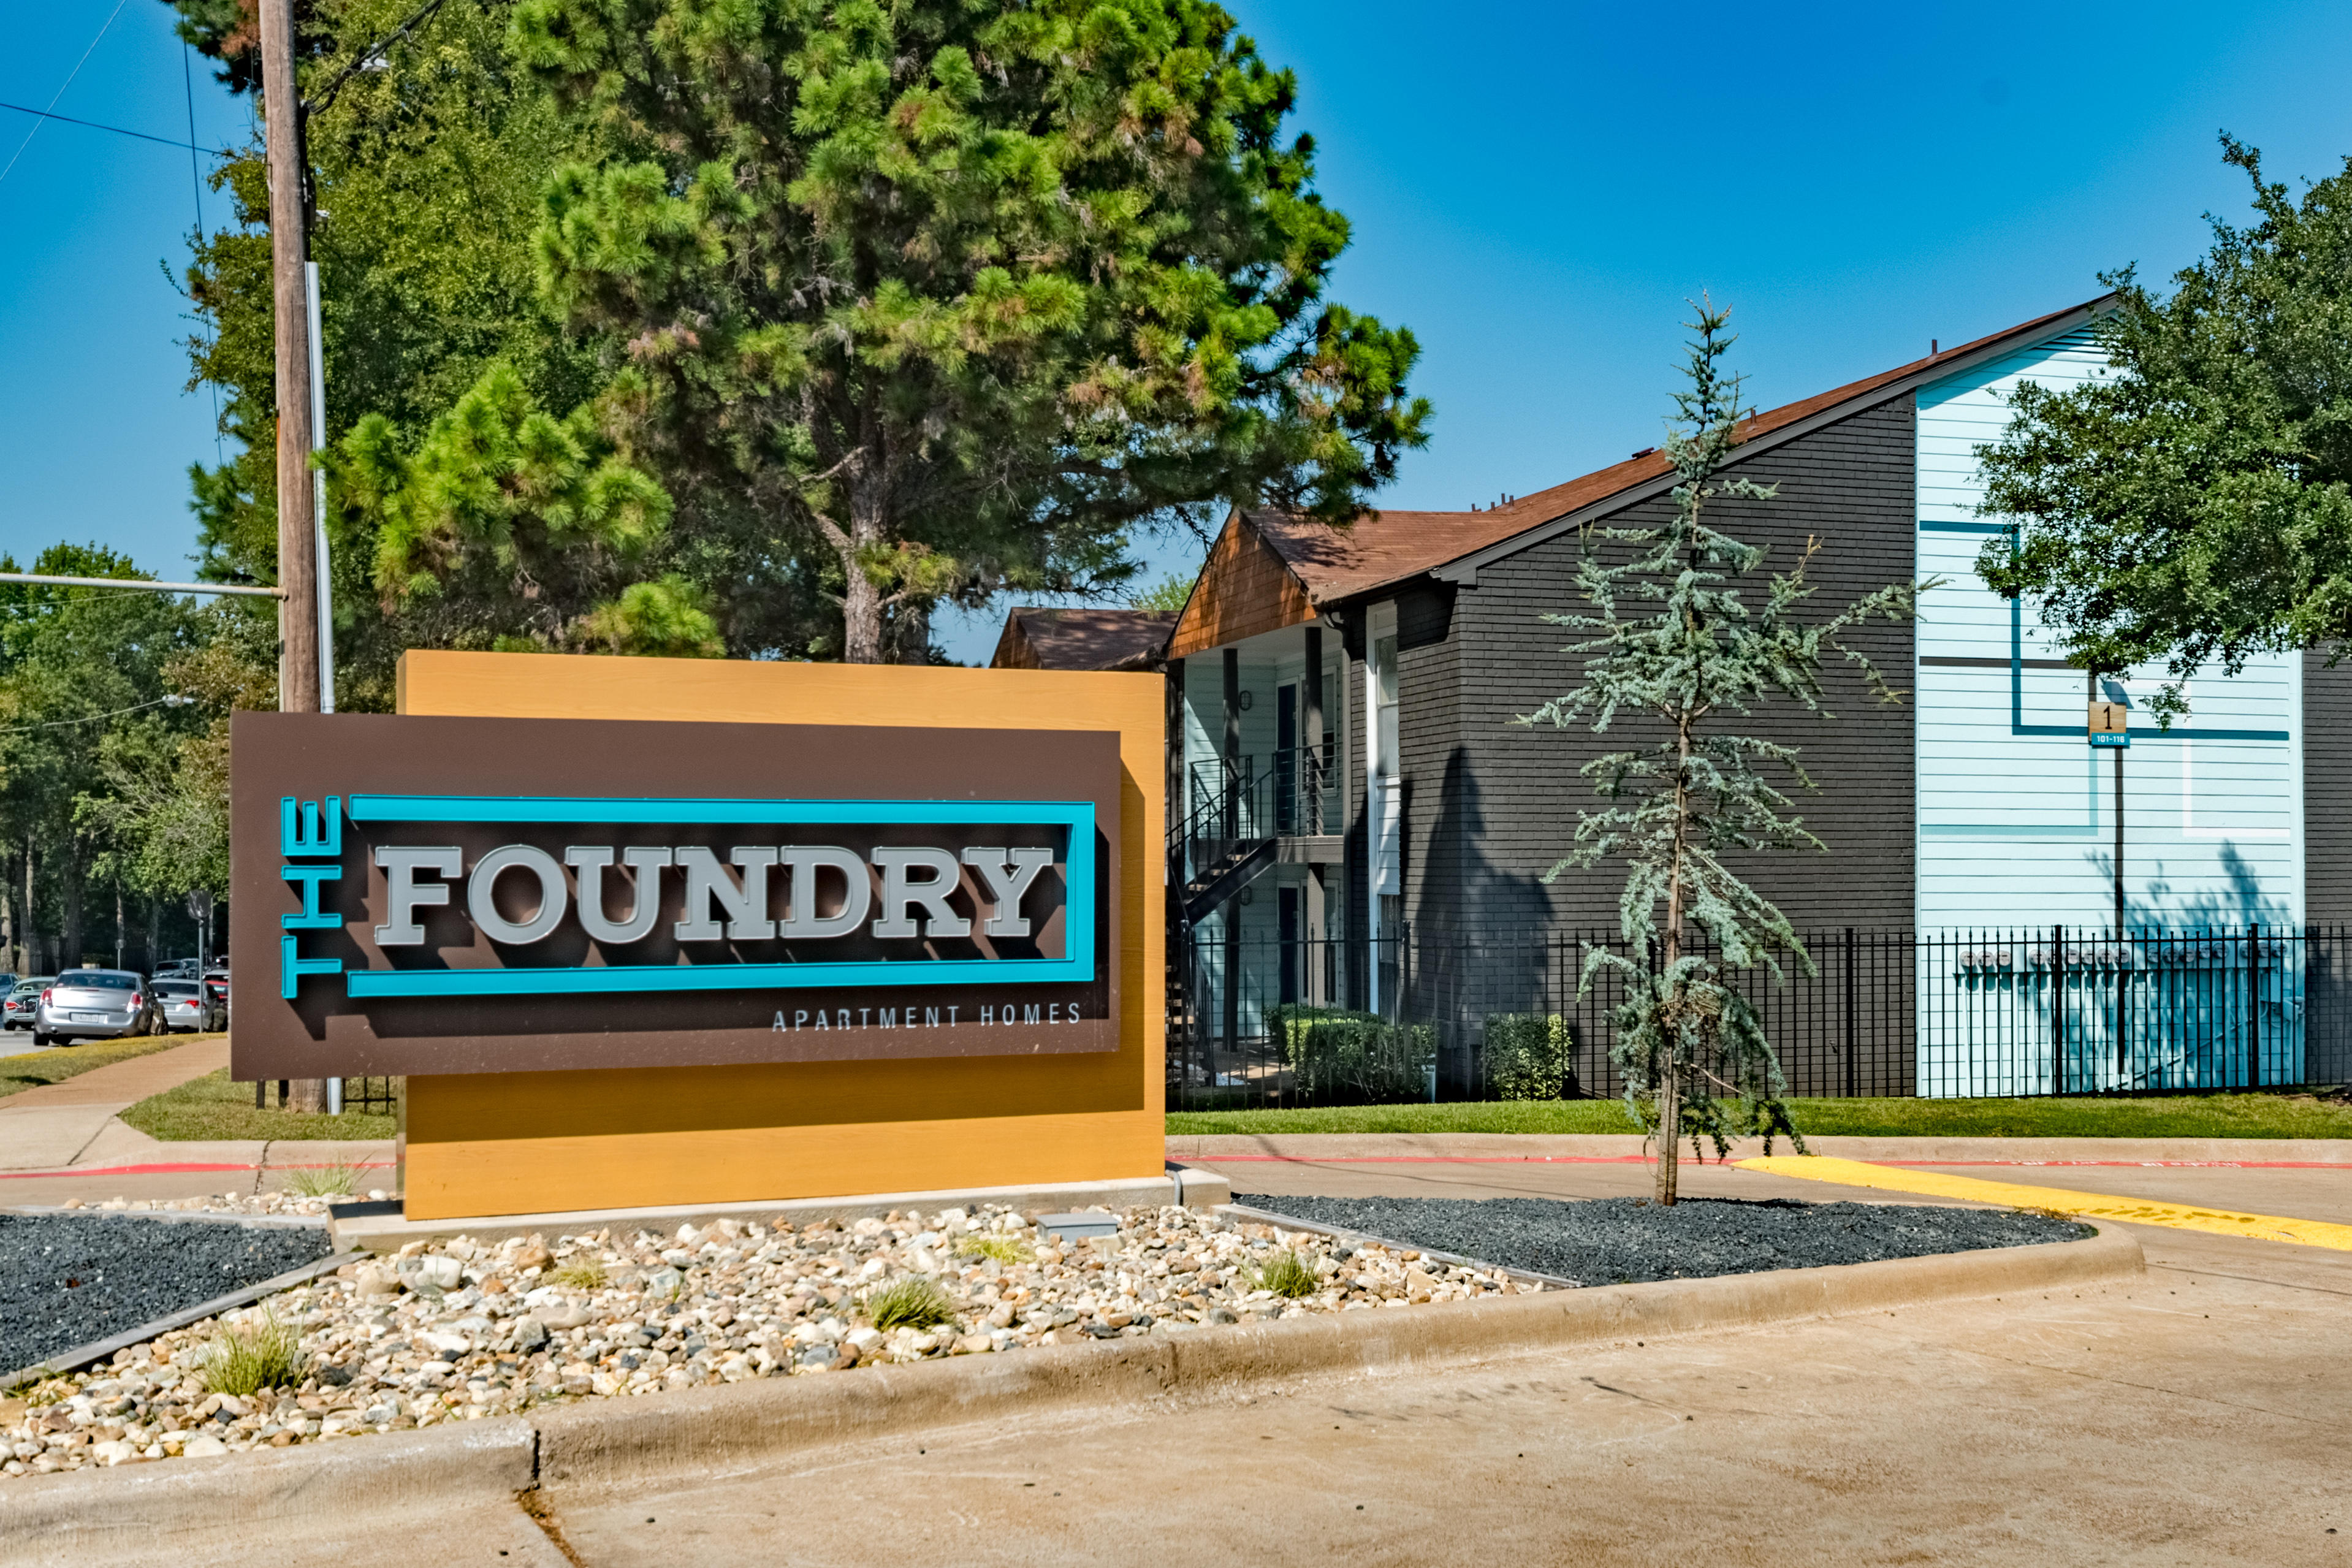 The Foundry Apartments image 2